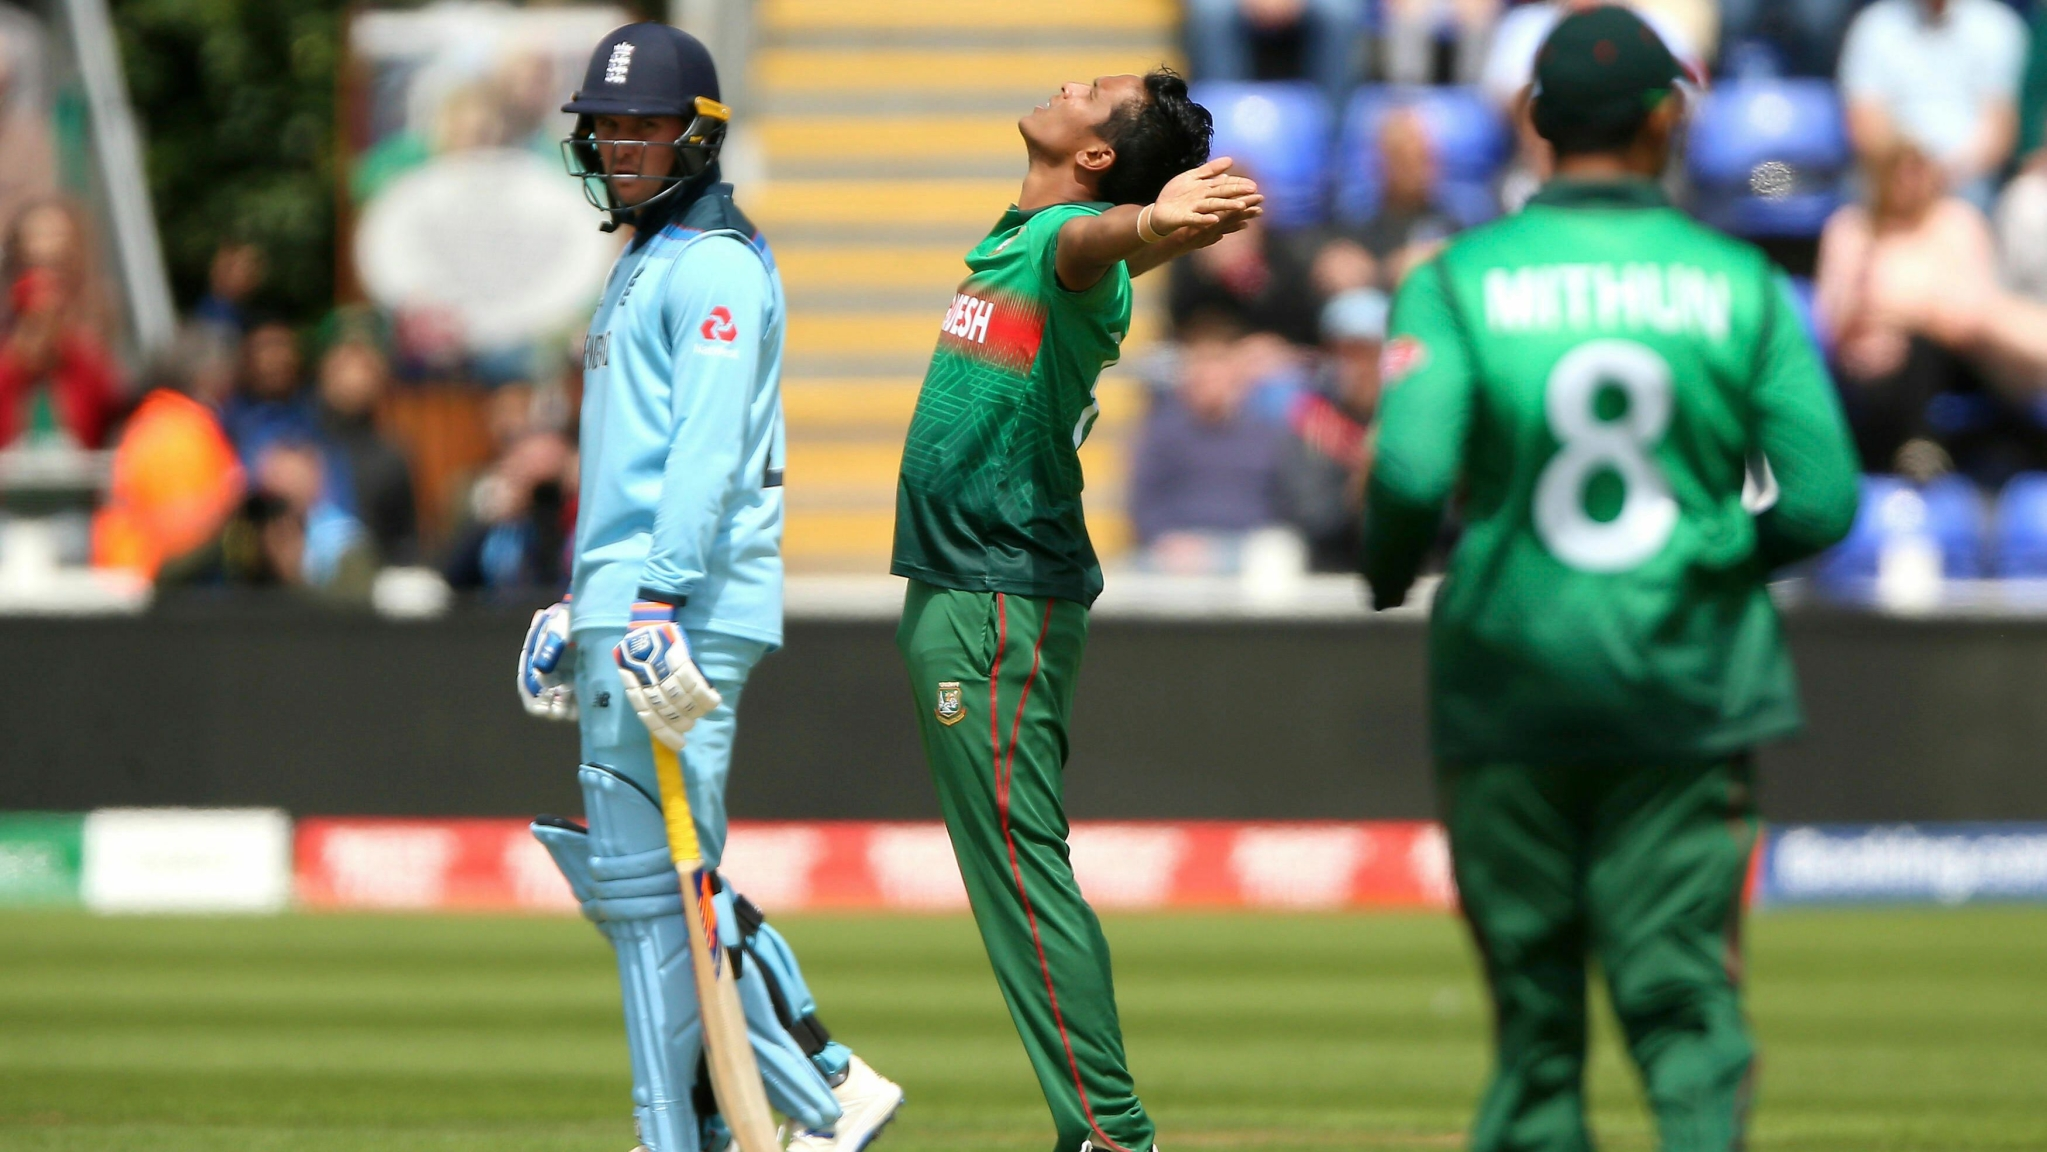 BAN vs SL ICC World Cup Live: Where to Watch Streaming Online